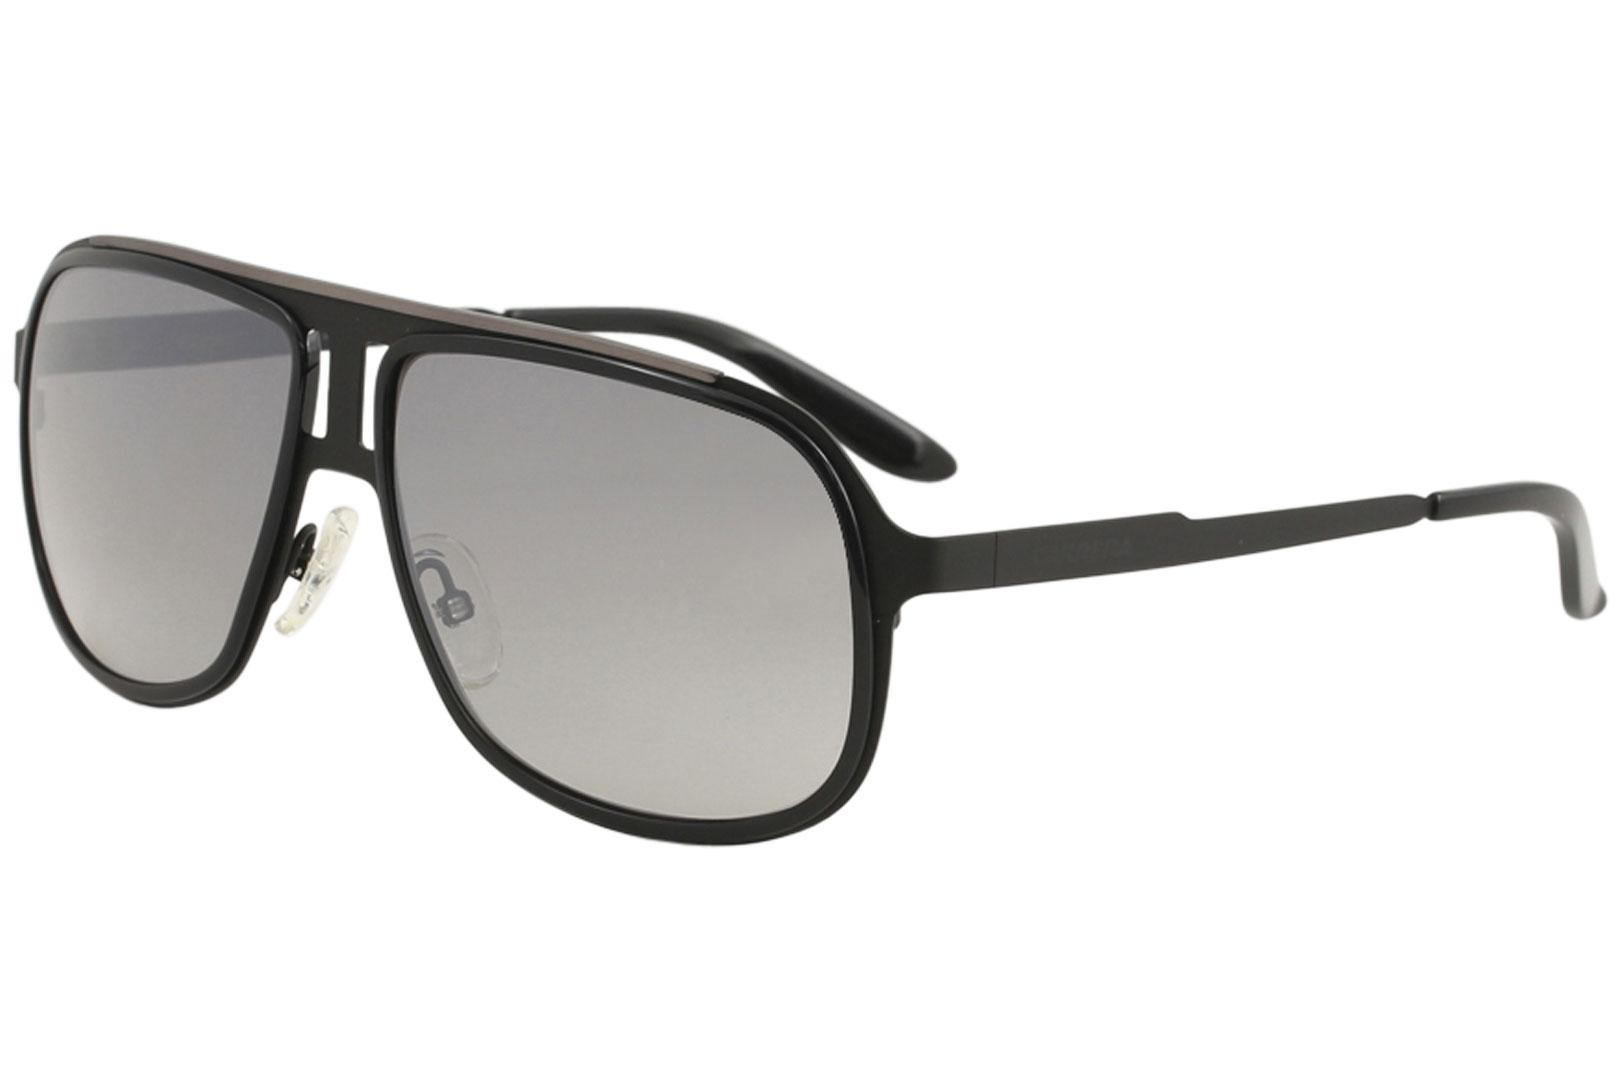 89d4dc66522 Carrera Men s 101 S Fashion Pilot Sunglasses by Carrera. Touch to zoom